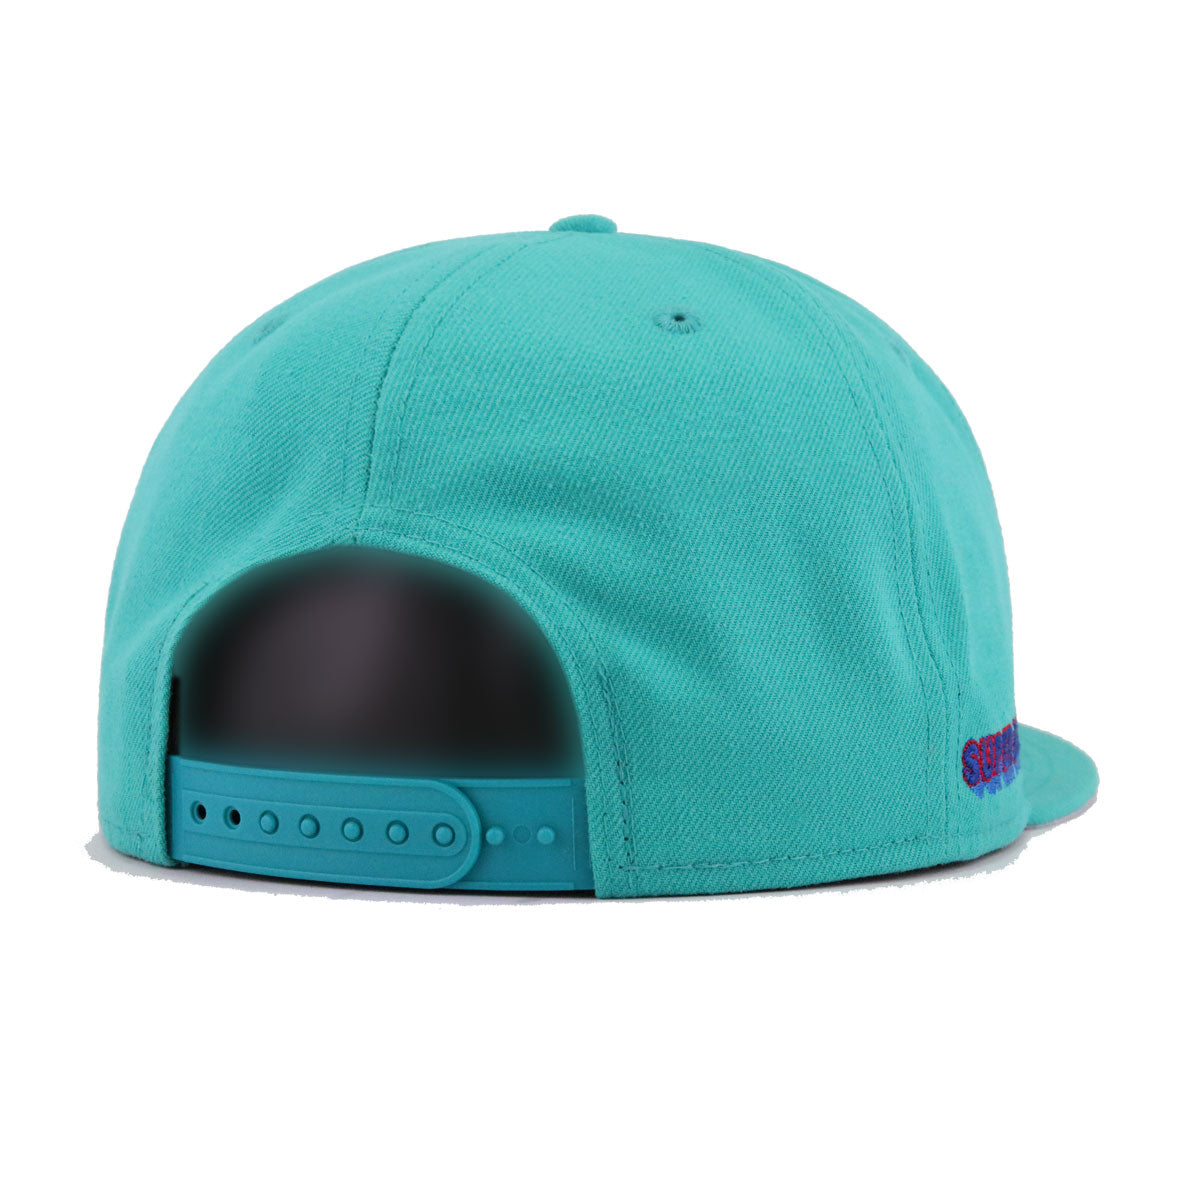 Miami Dolphins Teal Breeze Super Bowl 7 New Era 9Fifty Snapback